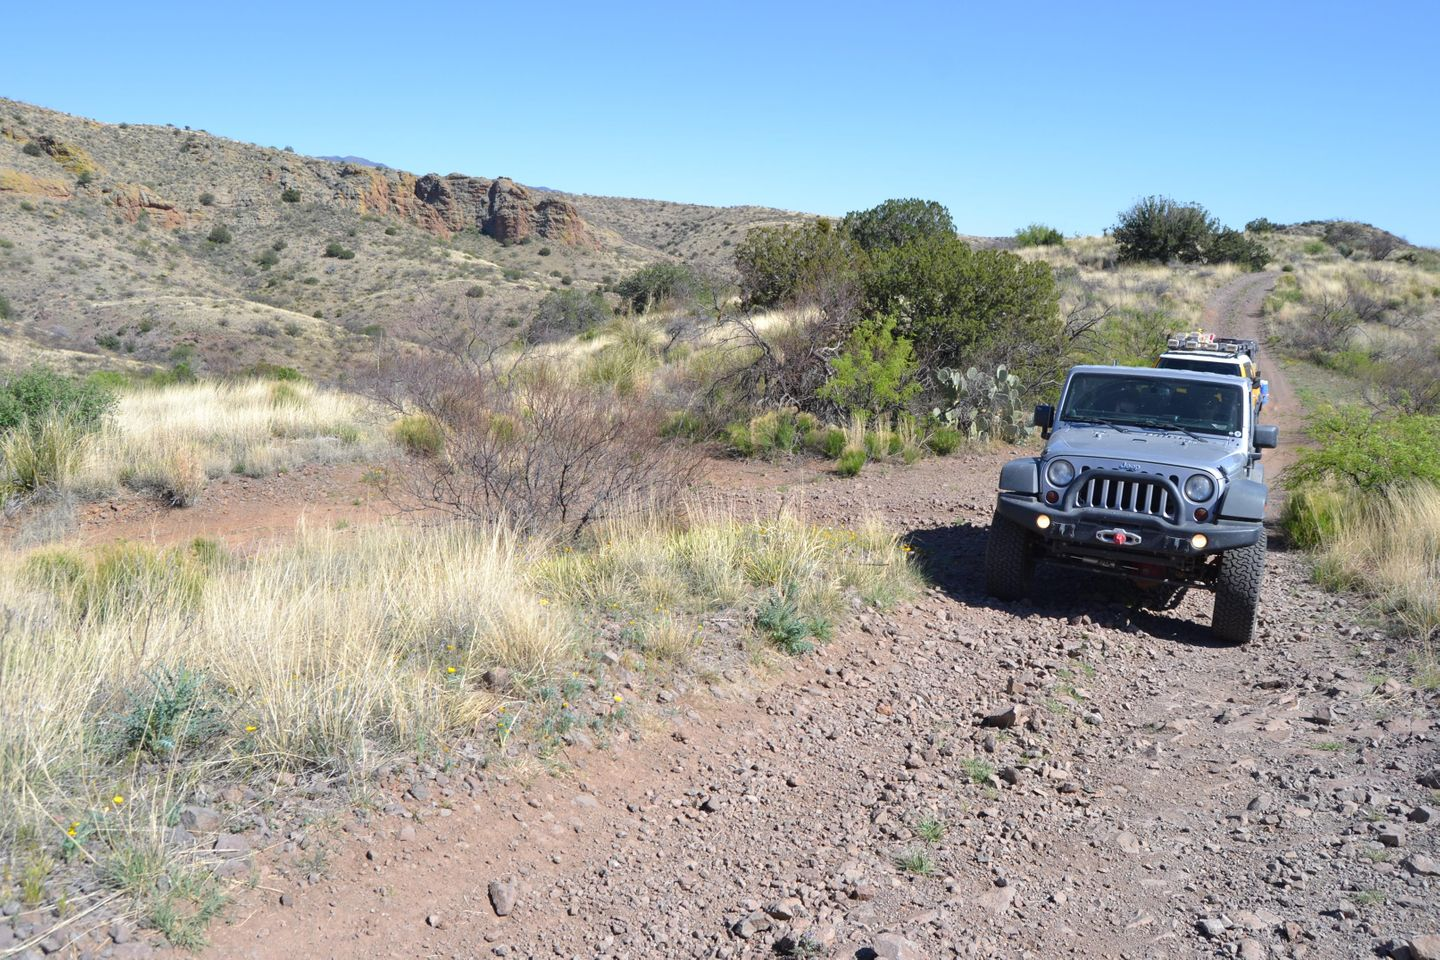 Jackson Cabin/Muleshoe Ranch Road - Waypoint 9: Unknown Forest Road - To Abandoned Browning Ranch  Double D Canyon